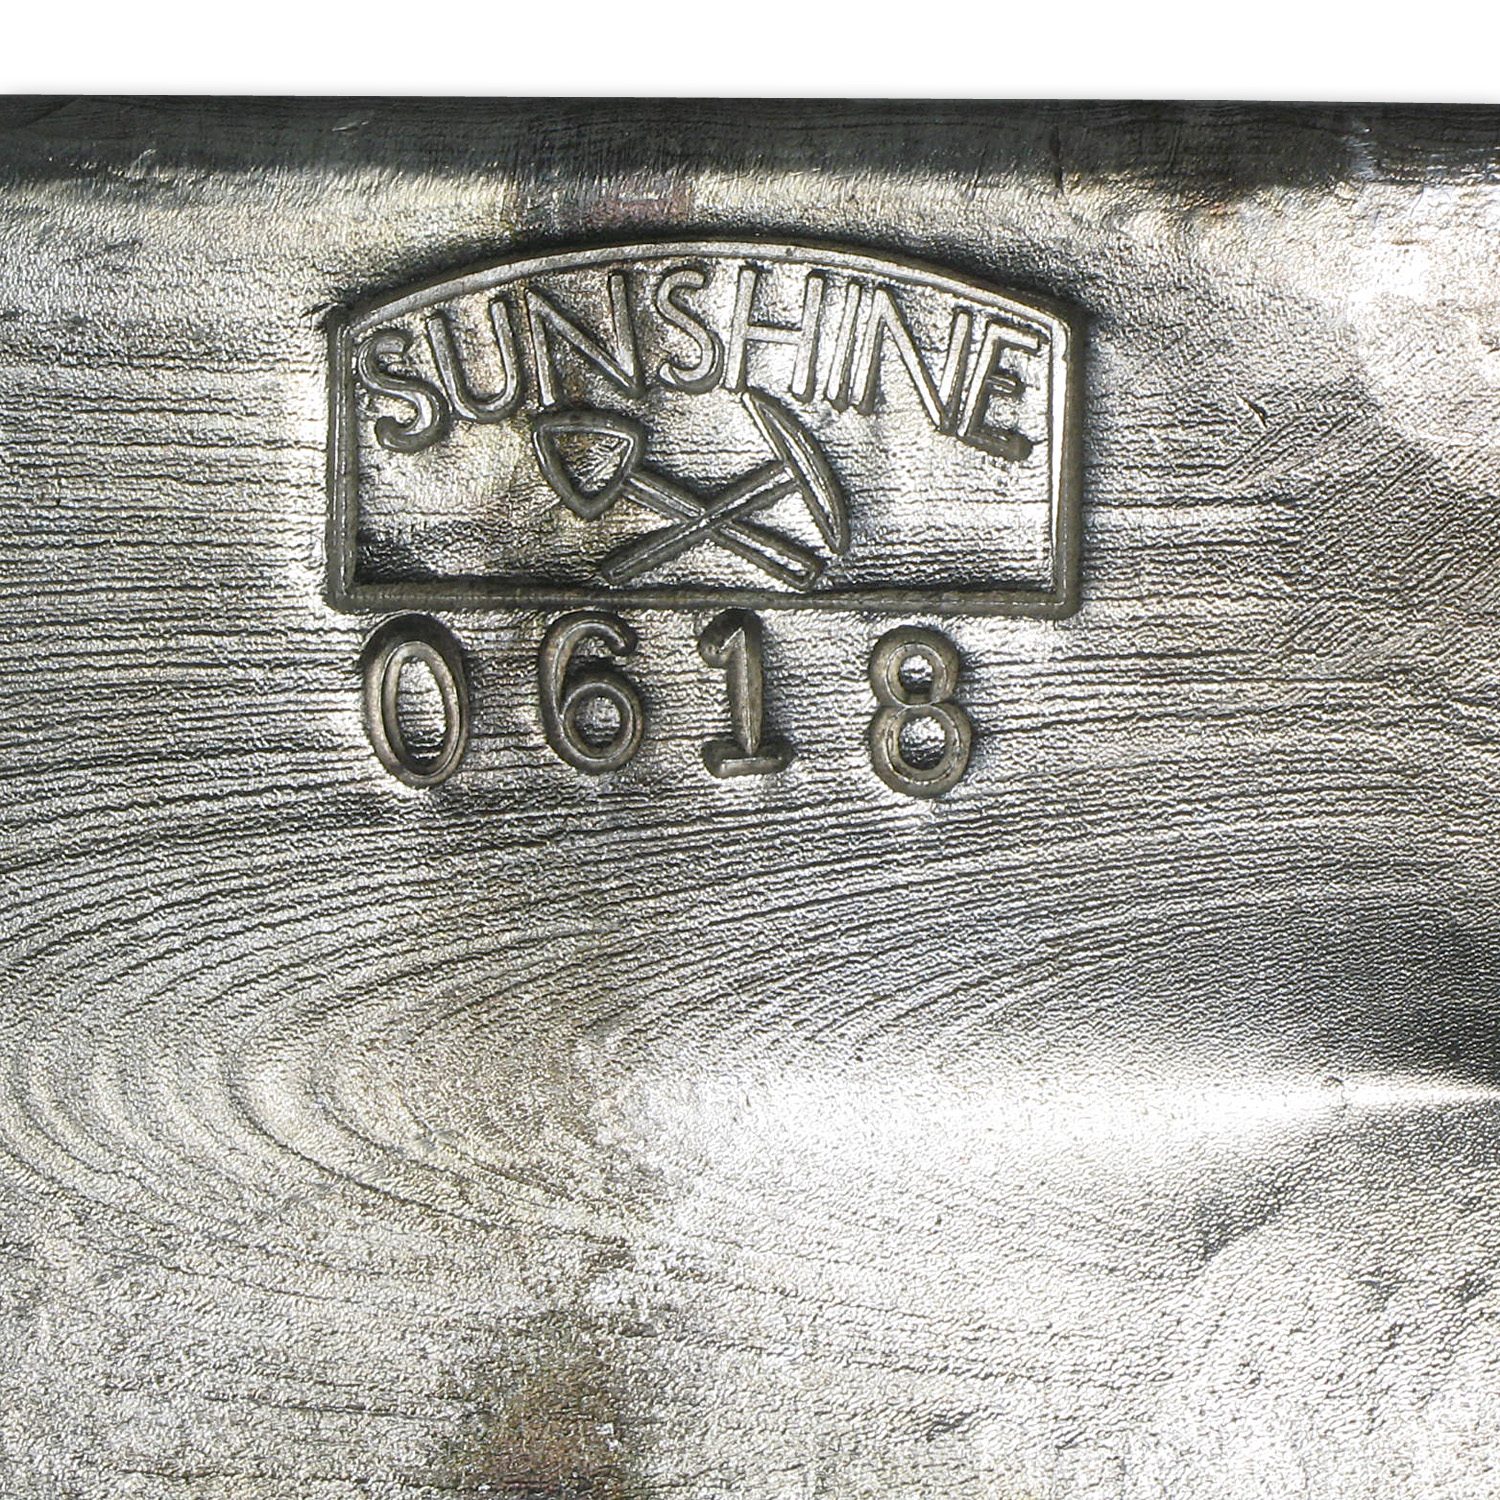 100 oz Silver Bars - Sunshine (1985/Vintage/Poured)